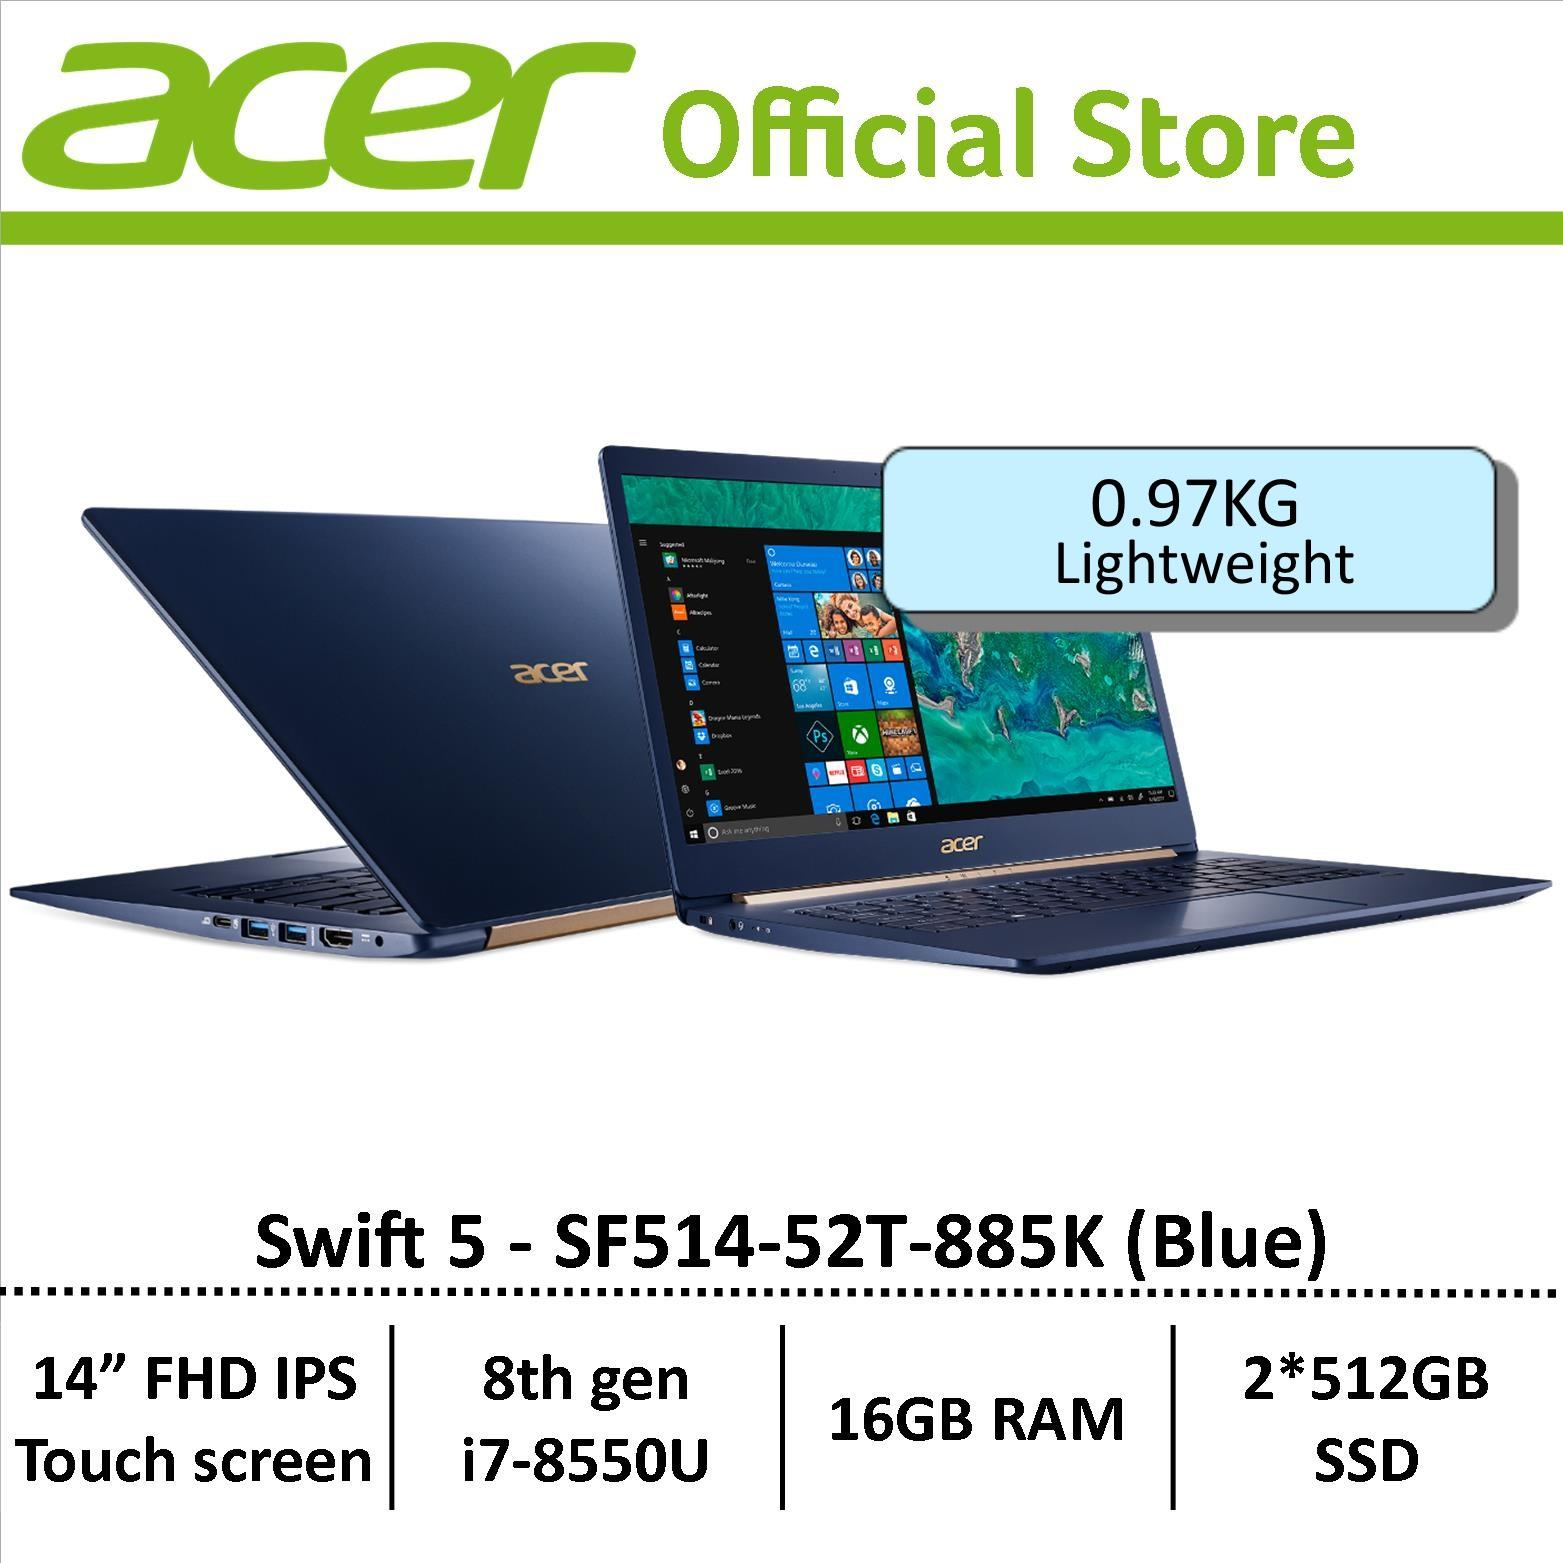 Acer Swift 5 SF514-52T-885K(Blue) Thin & Light Laptop – Free Gift with purchase